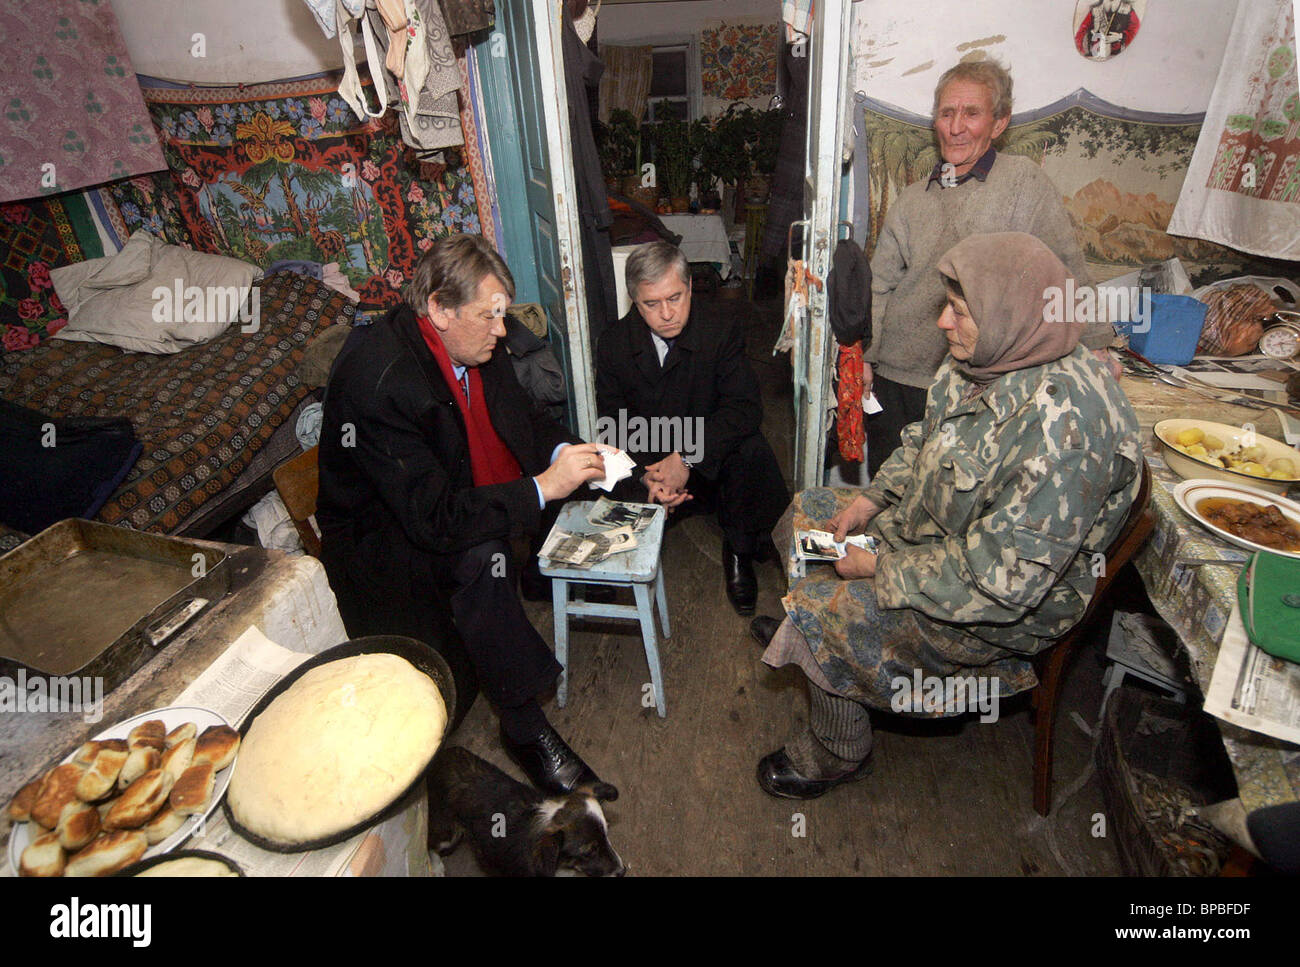 Ukrainian President visits exclusion zone of Chernobyl Nuclear Power Station - Stock Image